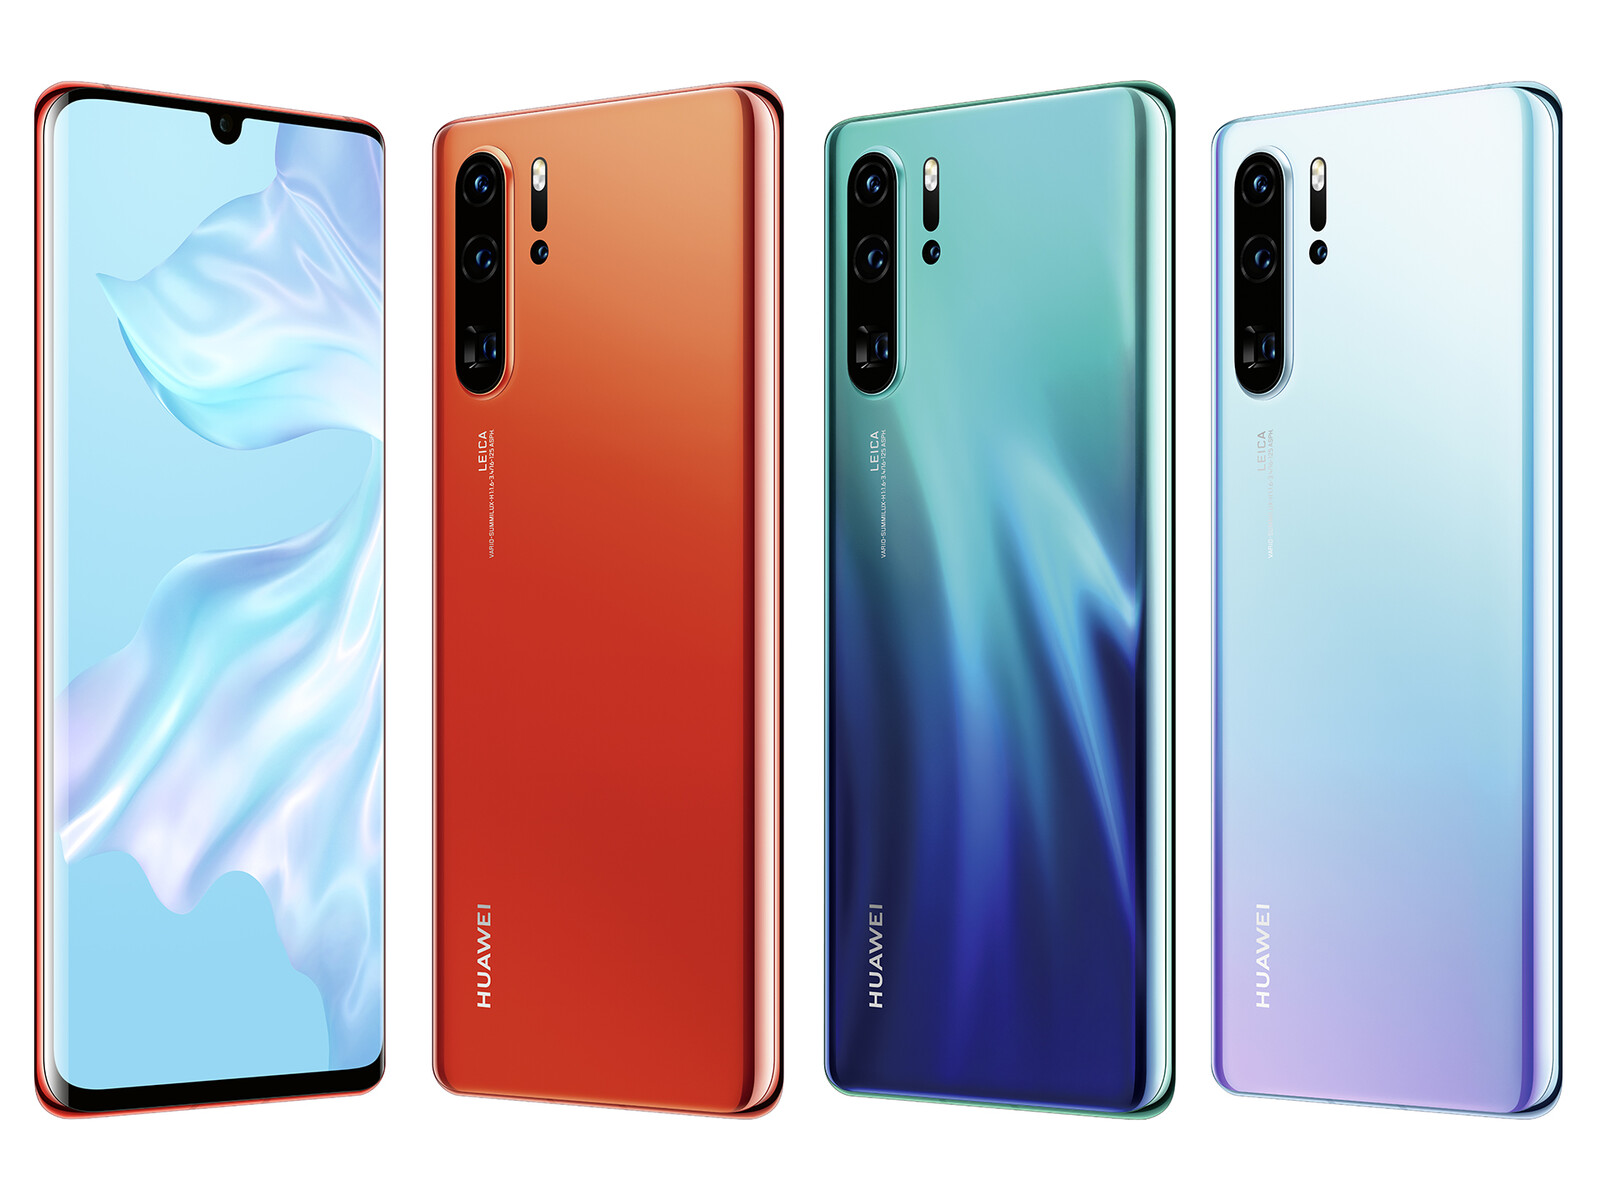 Huawei P30 Pro - Notebookcheck net External Reviews